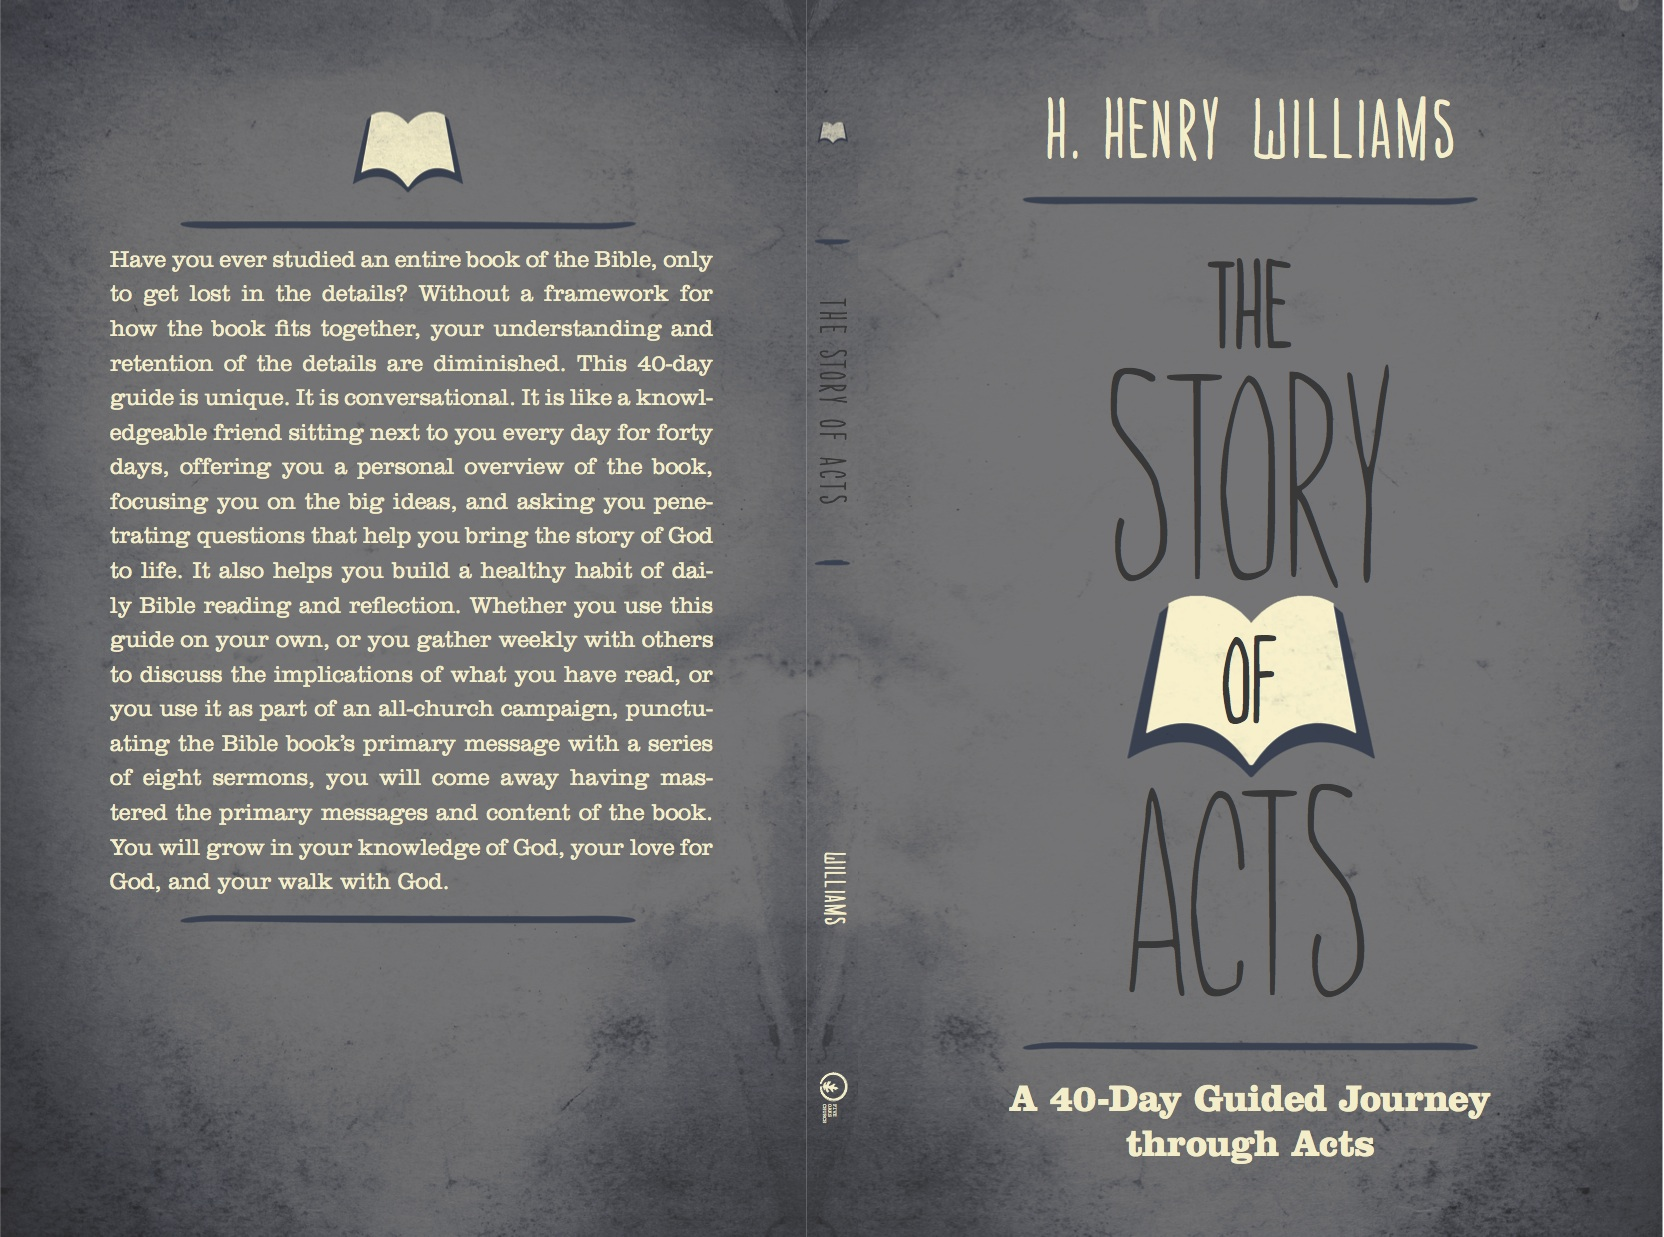 StoryOfActs_Cover_FINAL